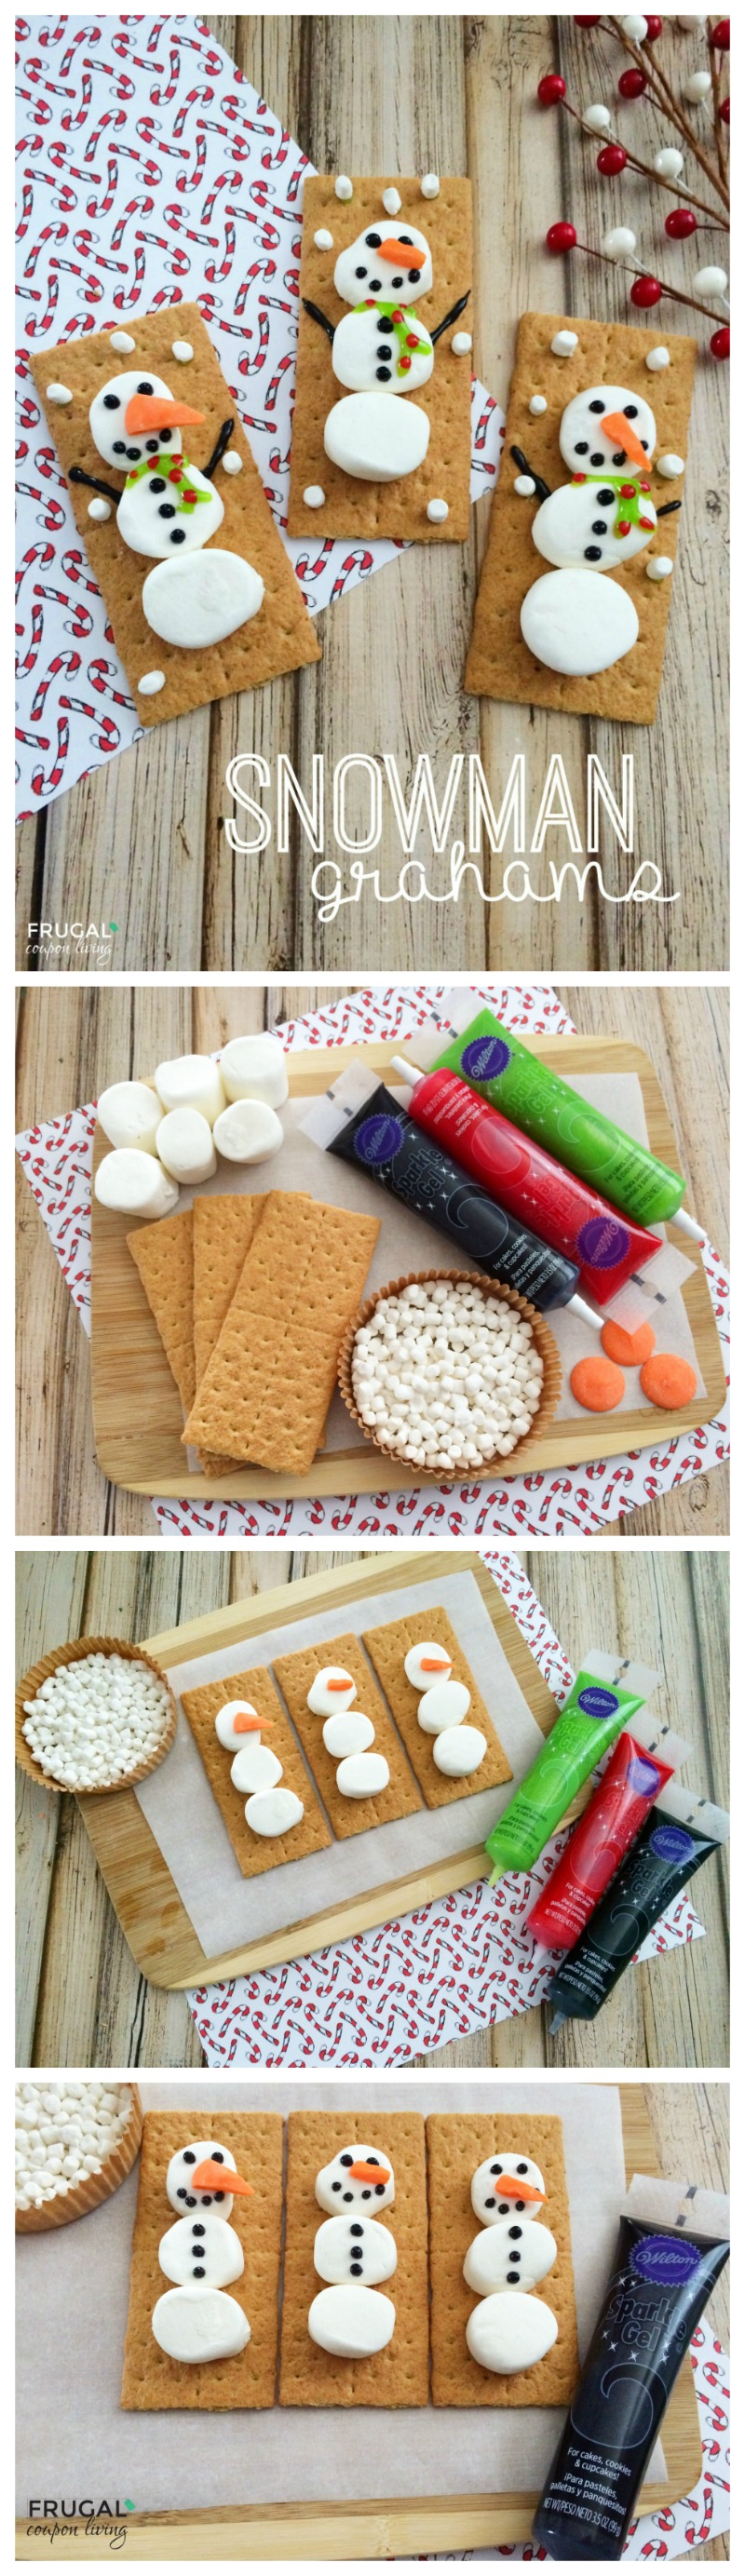 Classroom Craft Ideas ~ Snowman grahams holiday kids food craft